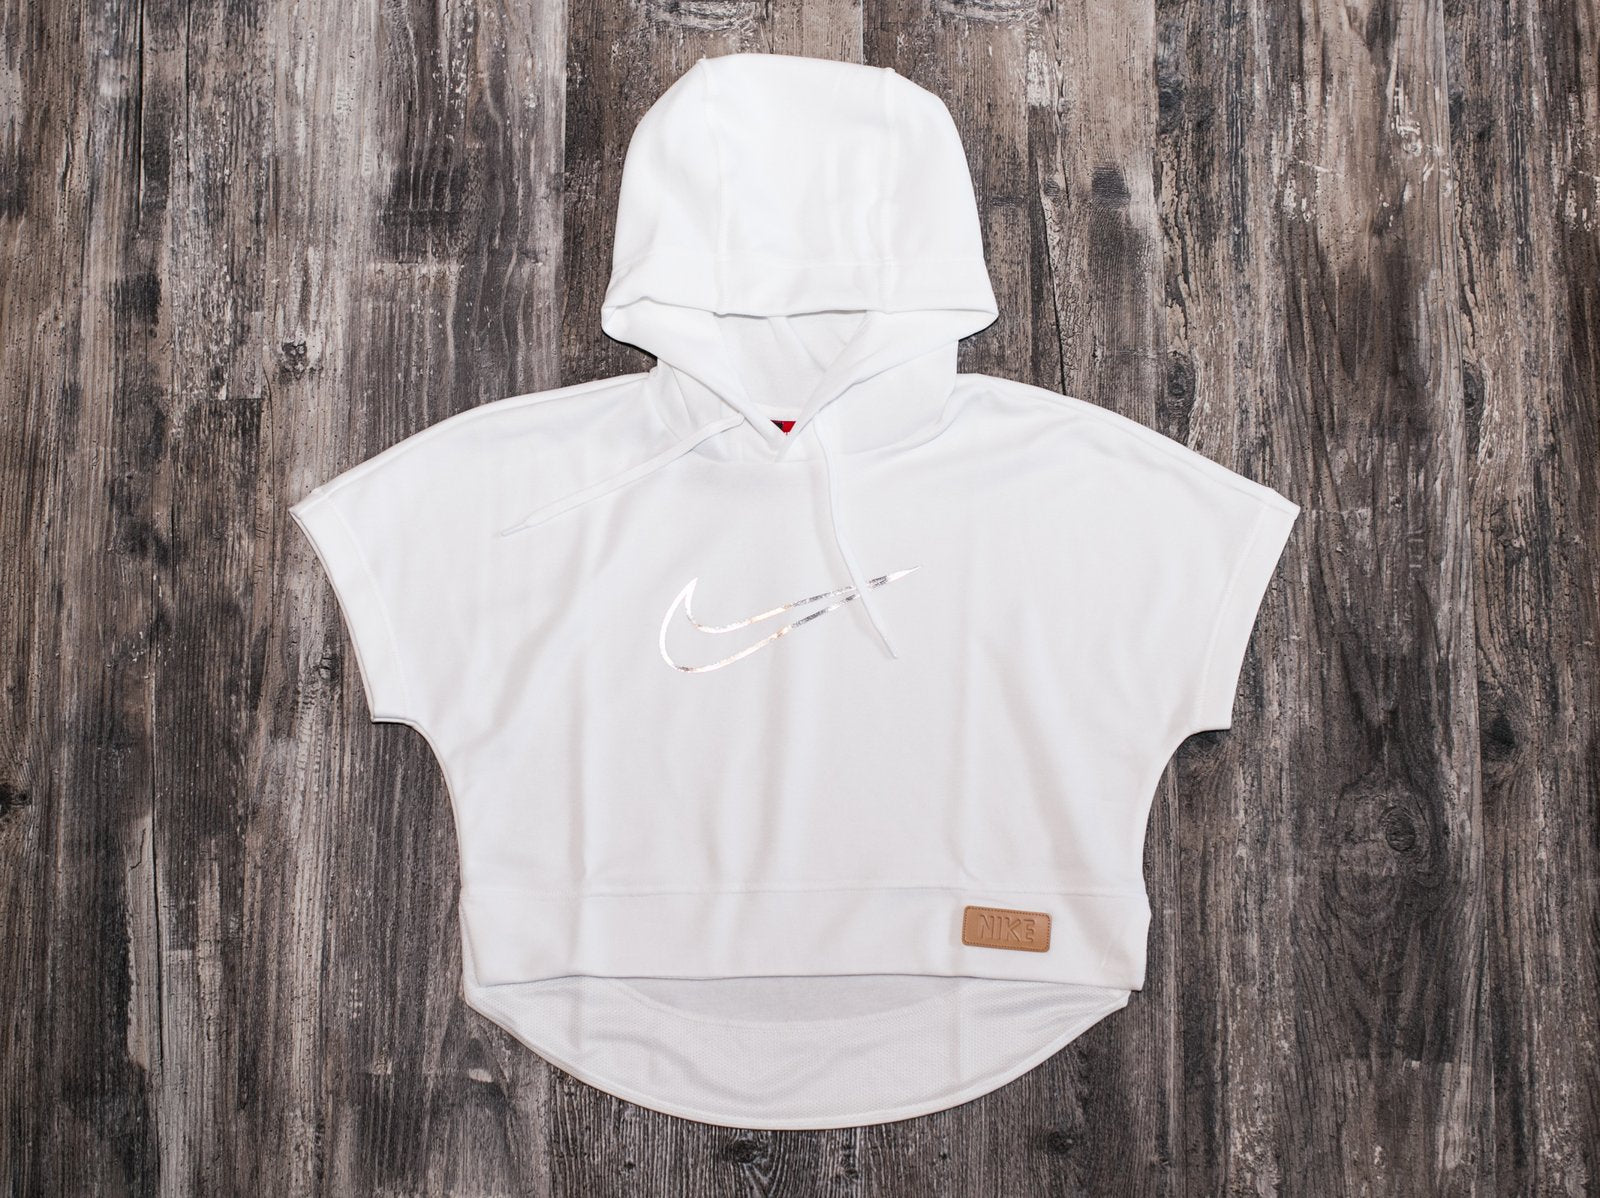 NIKE SPORTSWEAR WOMENS HOODED SHIRT